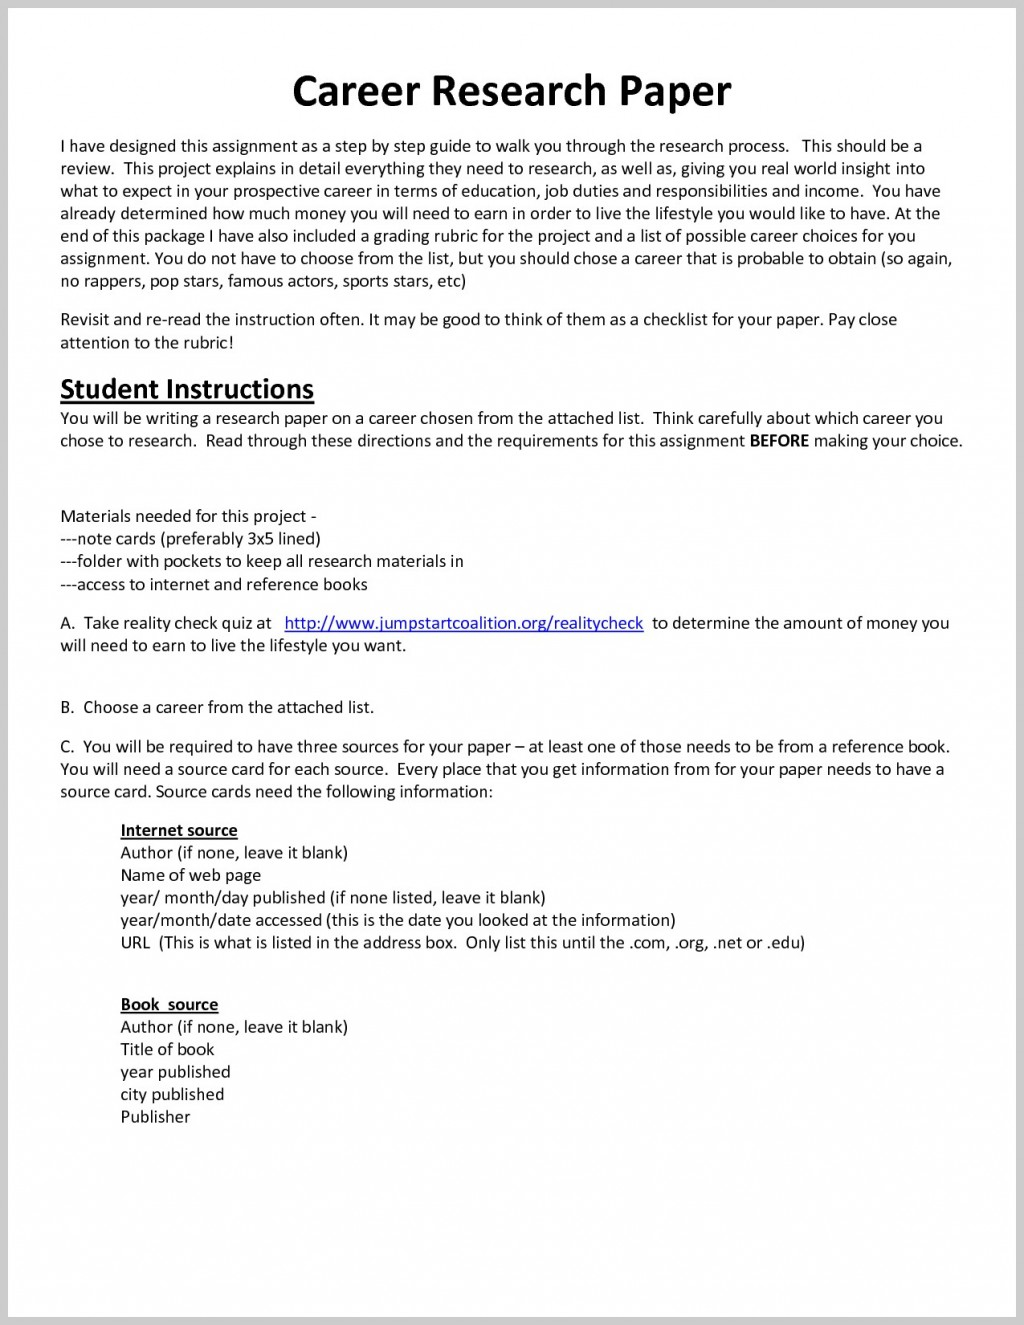 001 Research Paper Write Career Need Help Writing I An Essay Wondrous Rubric Large